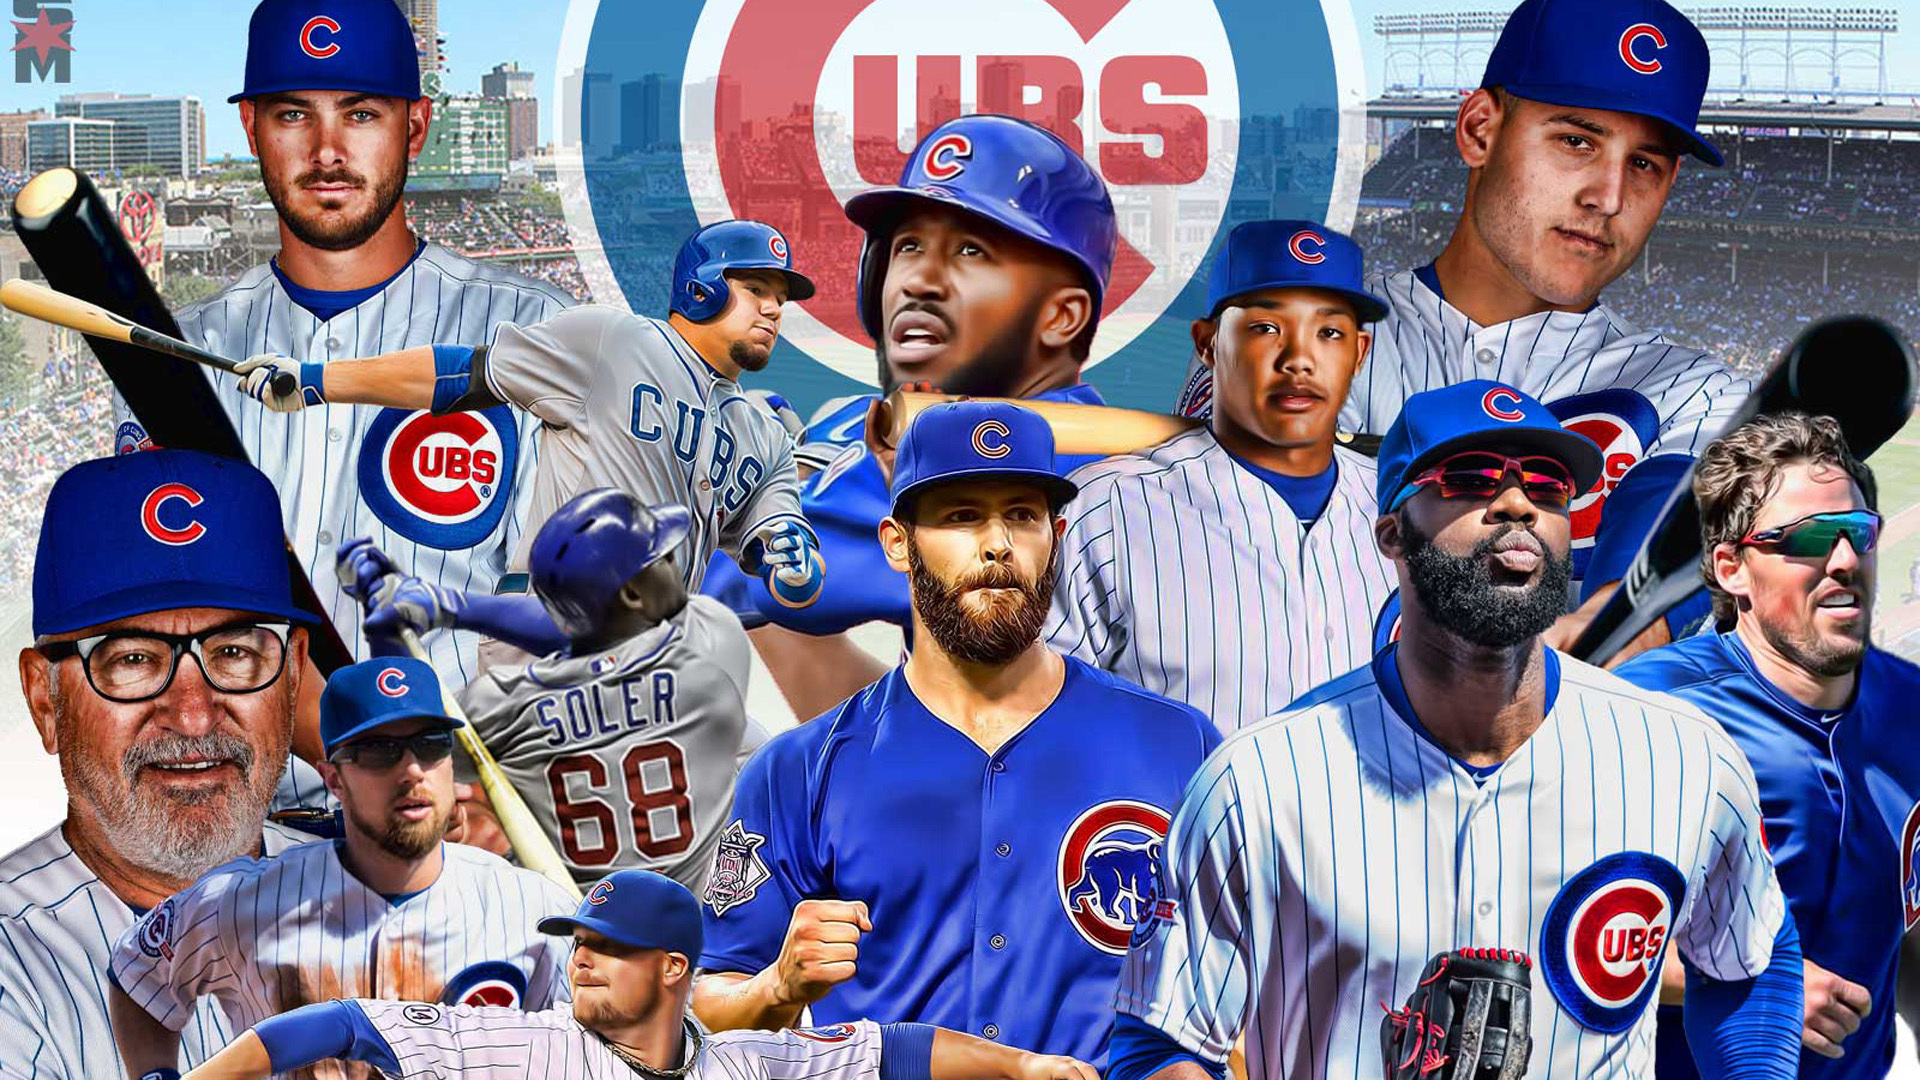 1920x1080 - Chicago Cubs Wallpapers 23